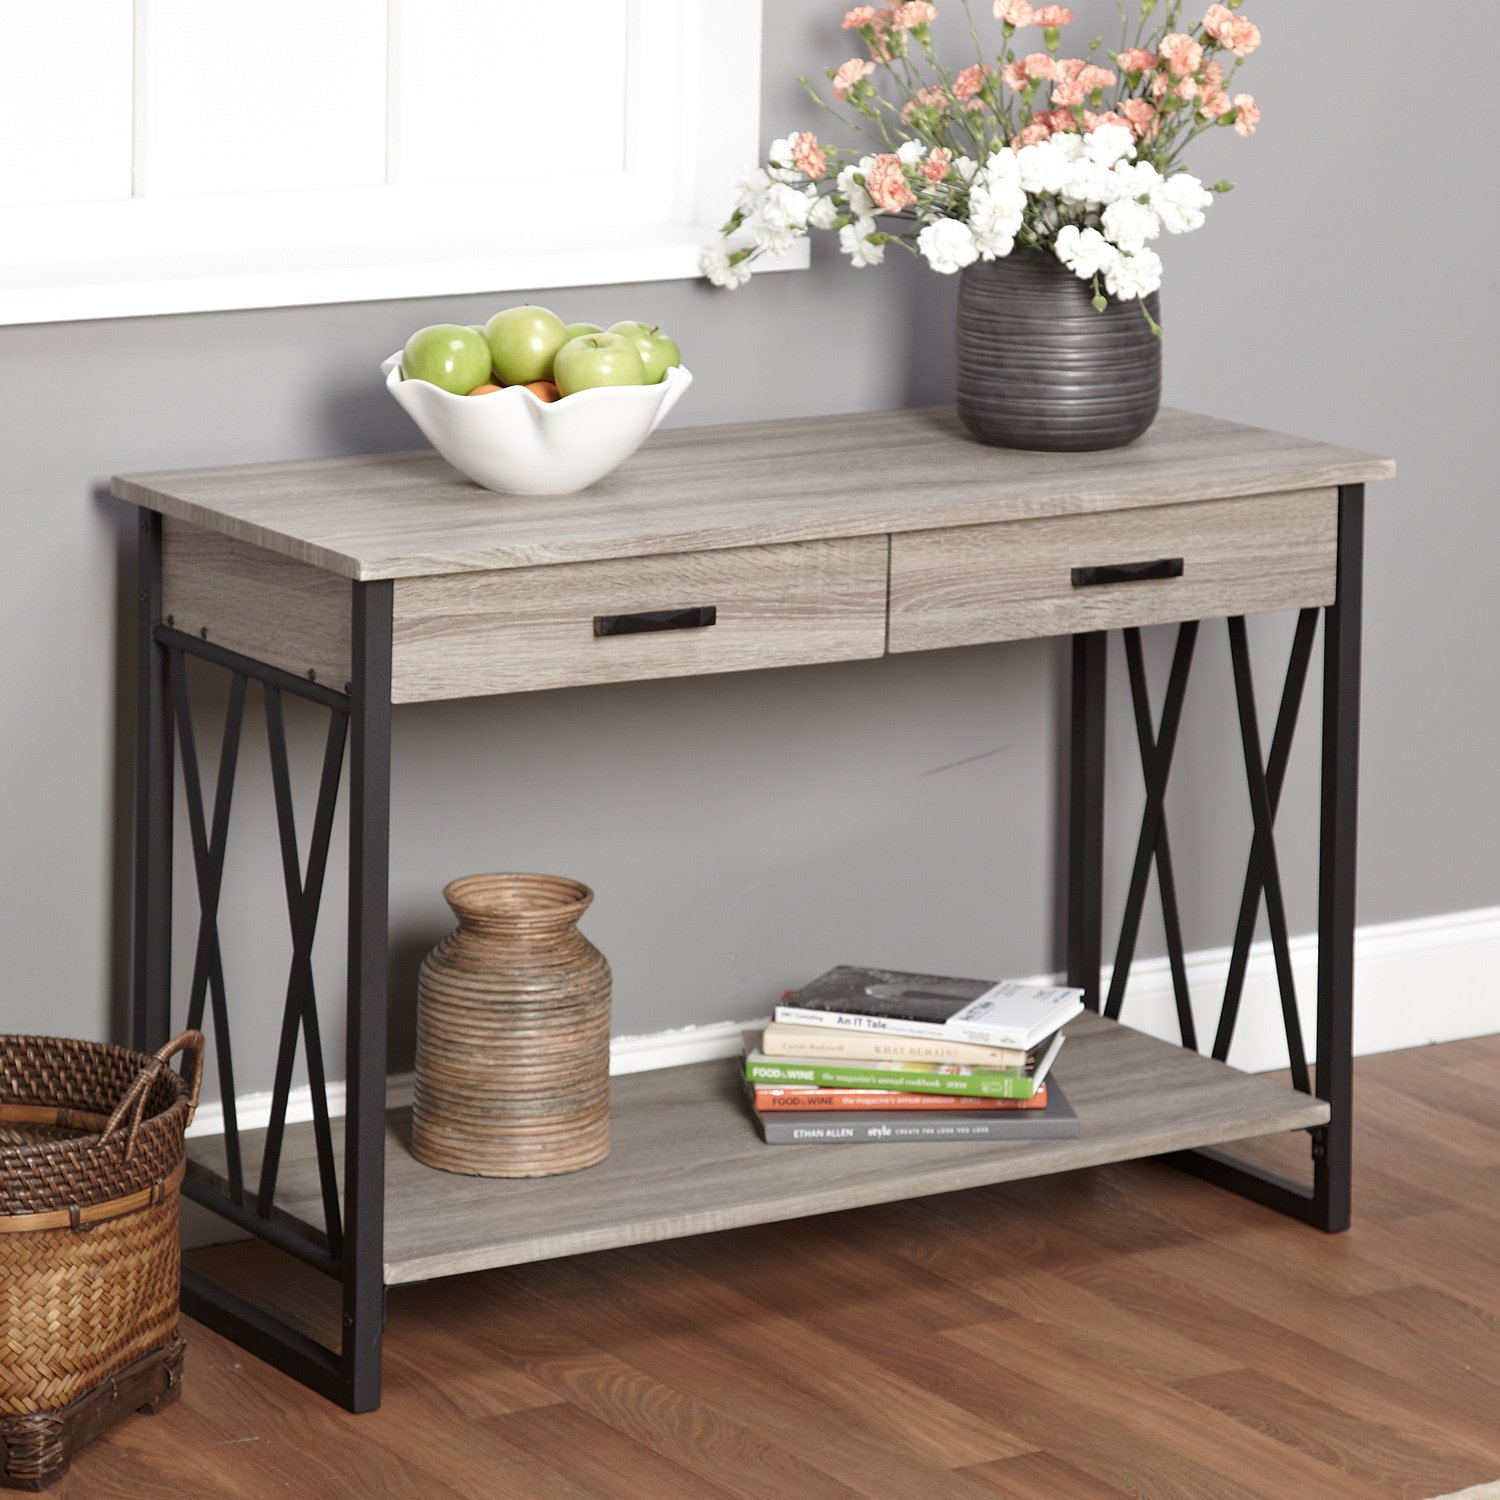 Console sofa table living home furniture decor room for Sofa side table